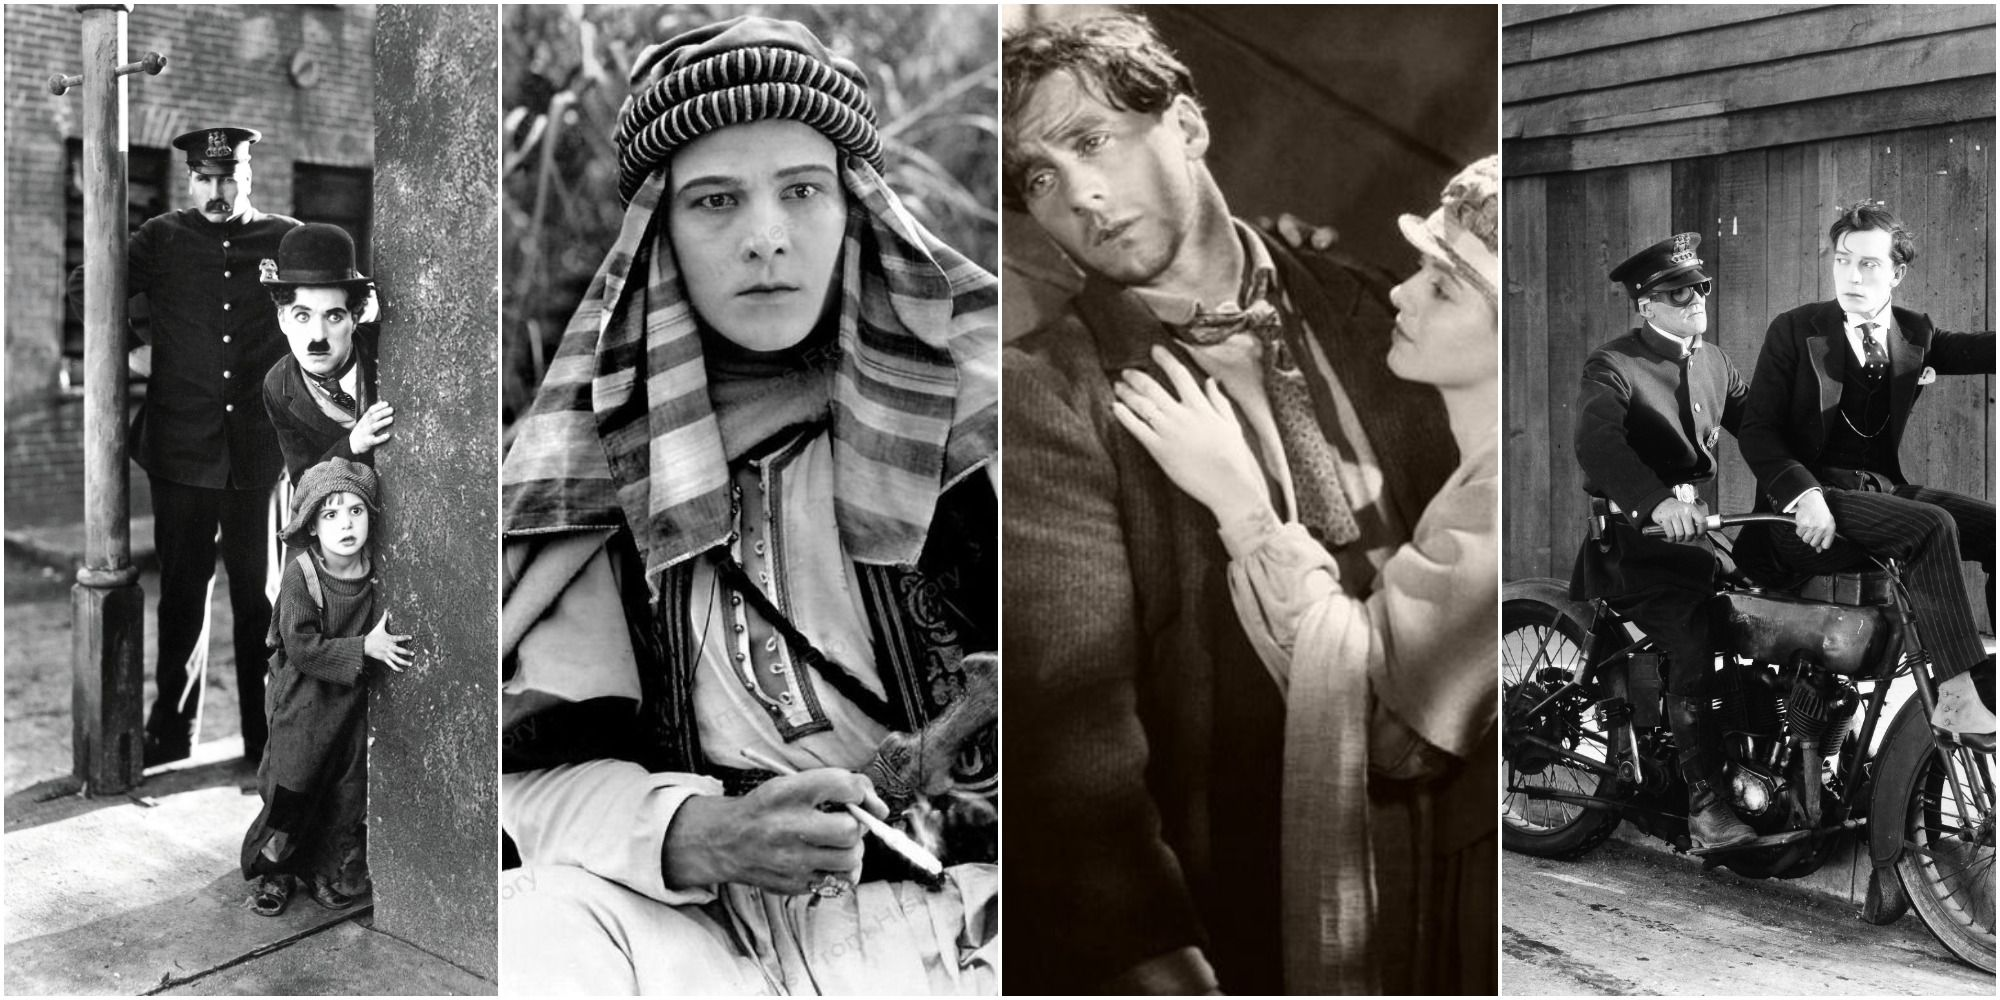 The 1920s: The 10 Best Hollywood Movies Of The Decade